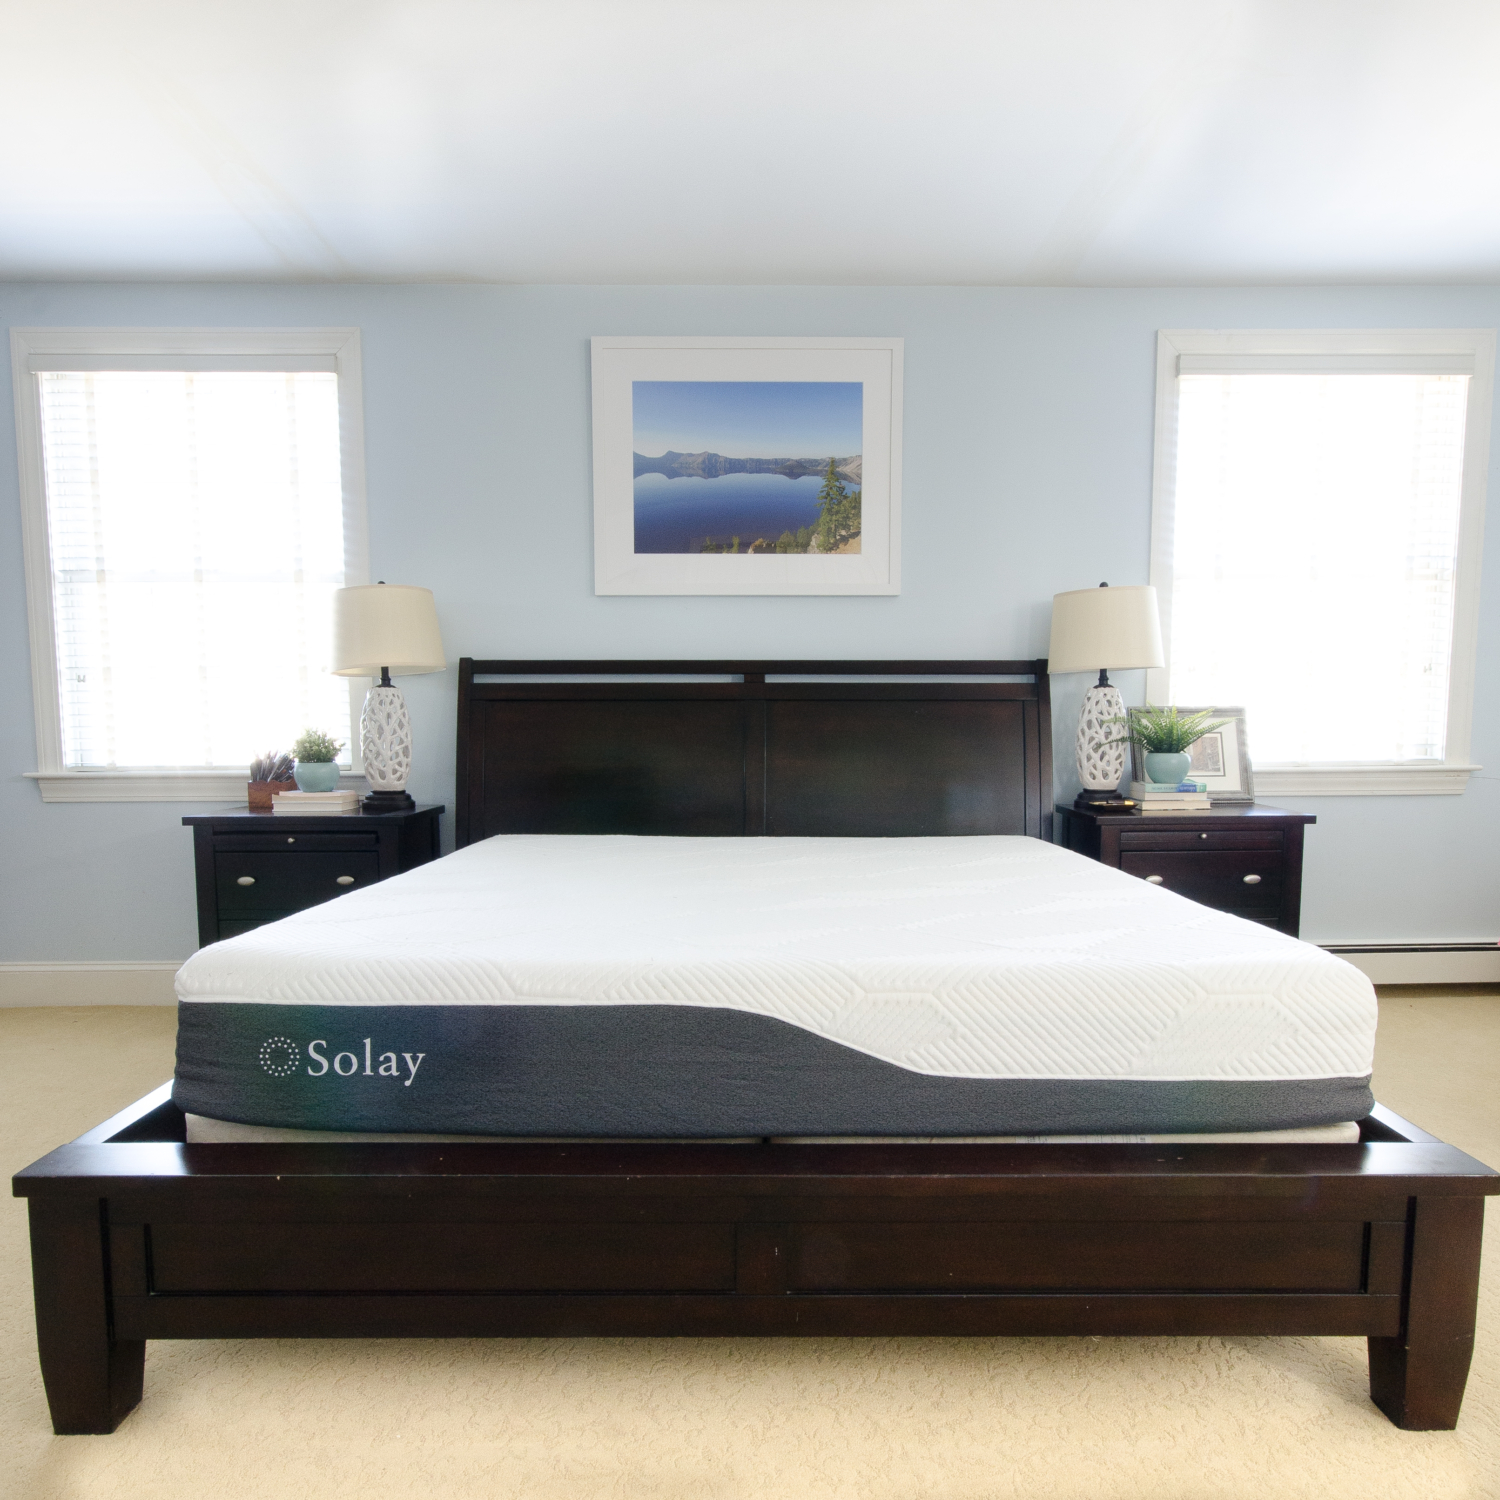 Bed in a box mattress review and why this one is risk free!